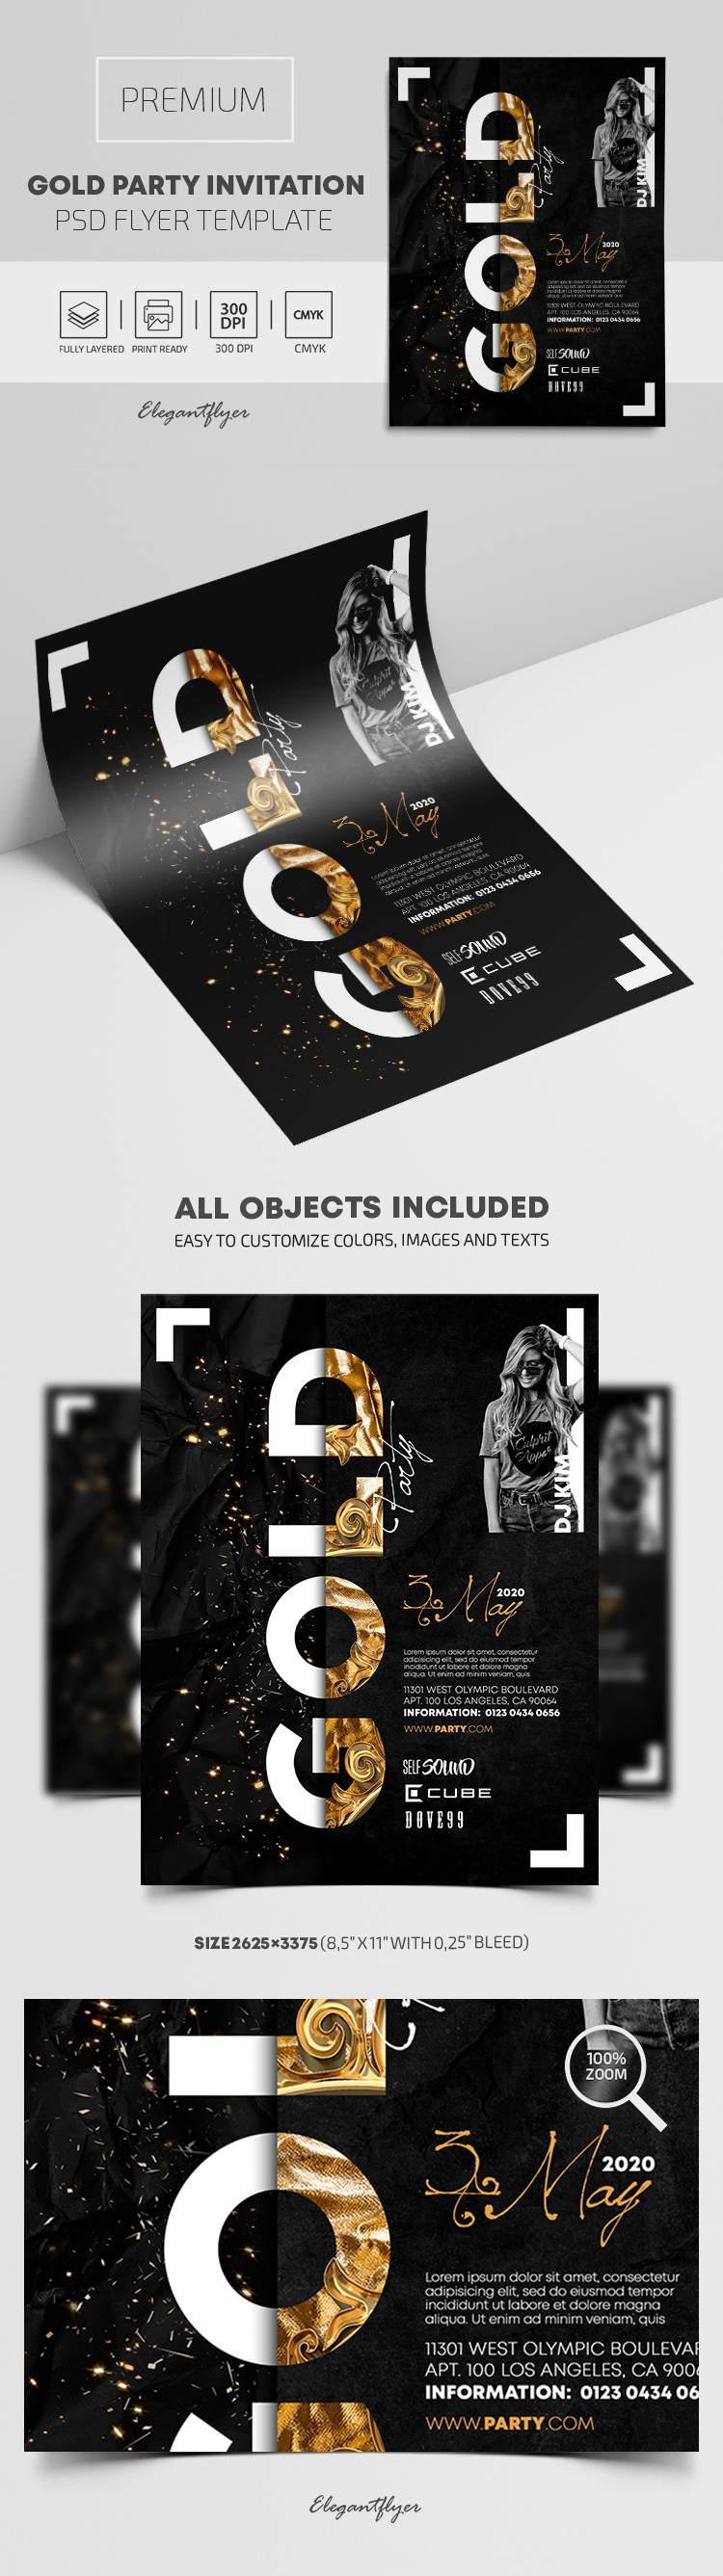 Gold Party Invitation – Premium PSD Flyer Template